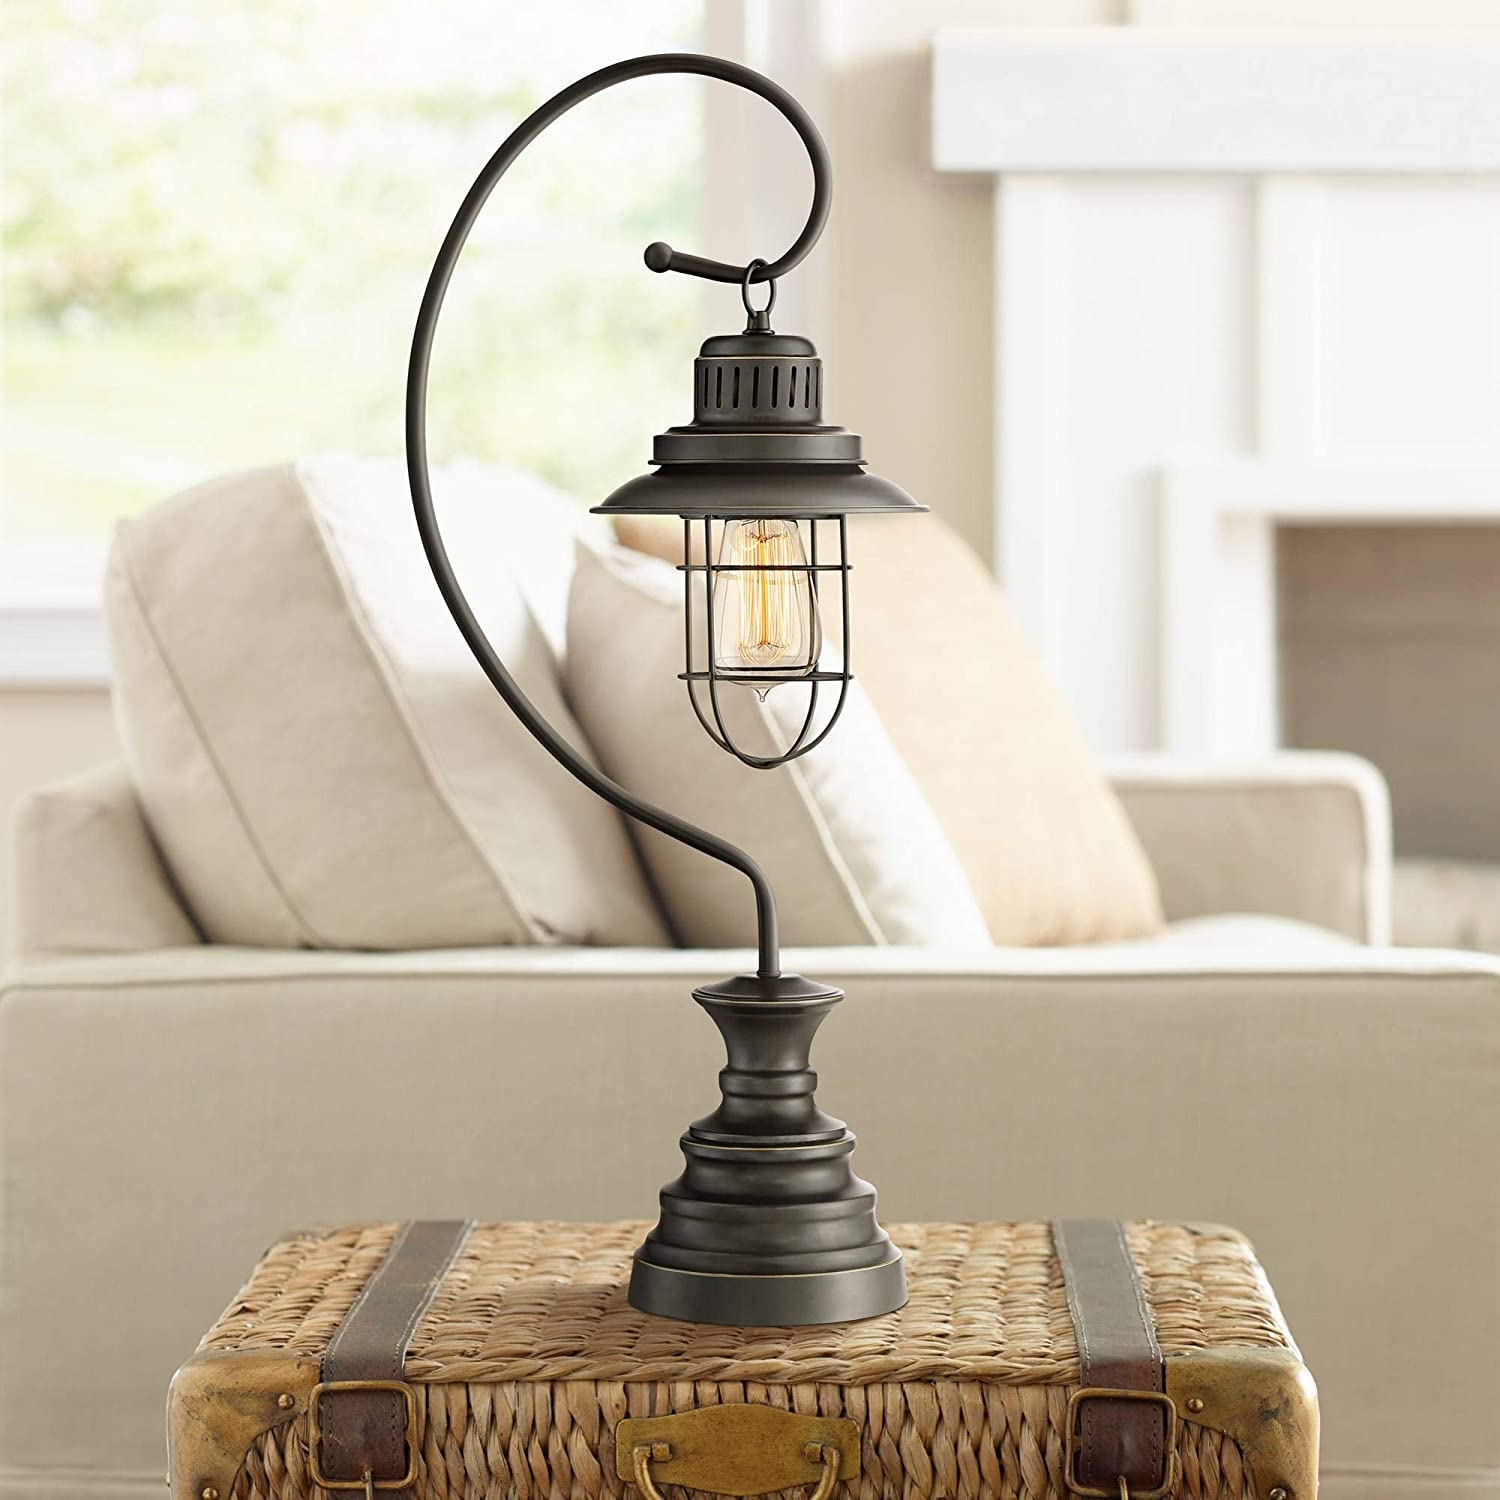 Ulysses Industrial Desk Table Lamp Dark Oil Rubbed Bronze Metal Wire Cage Shade Lantern for Living Room Bedroom Office